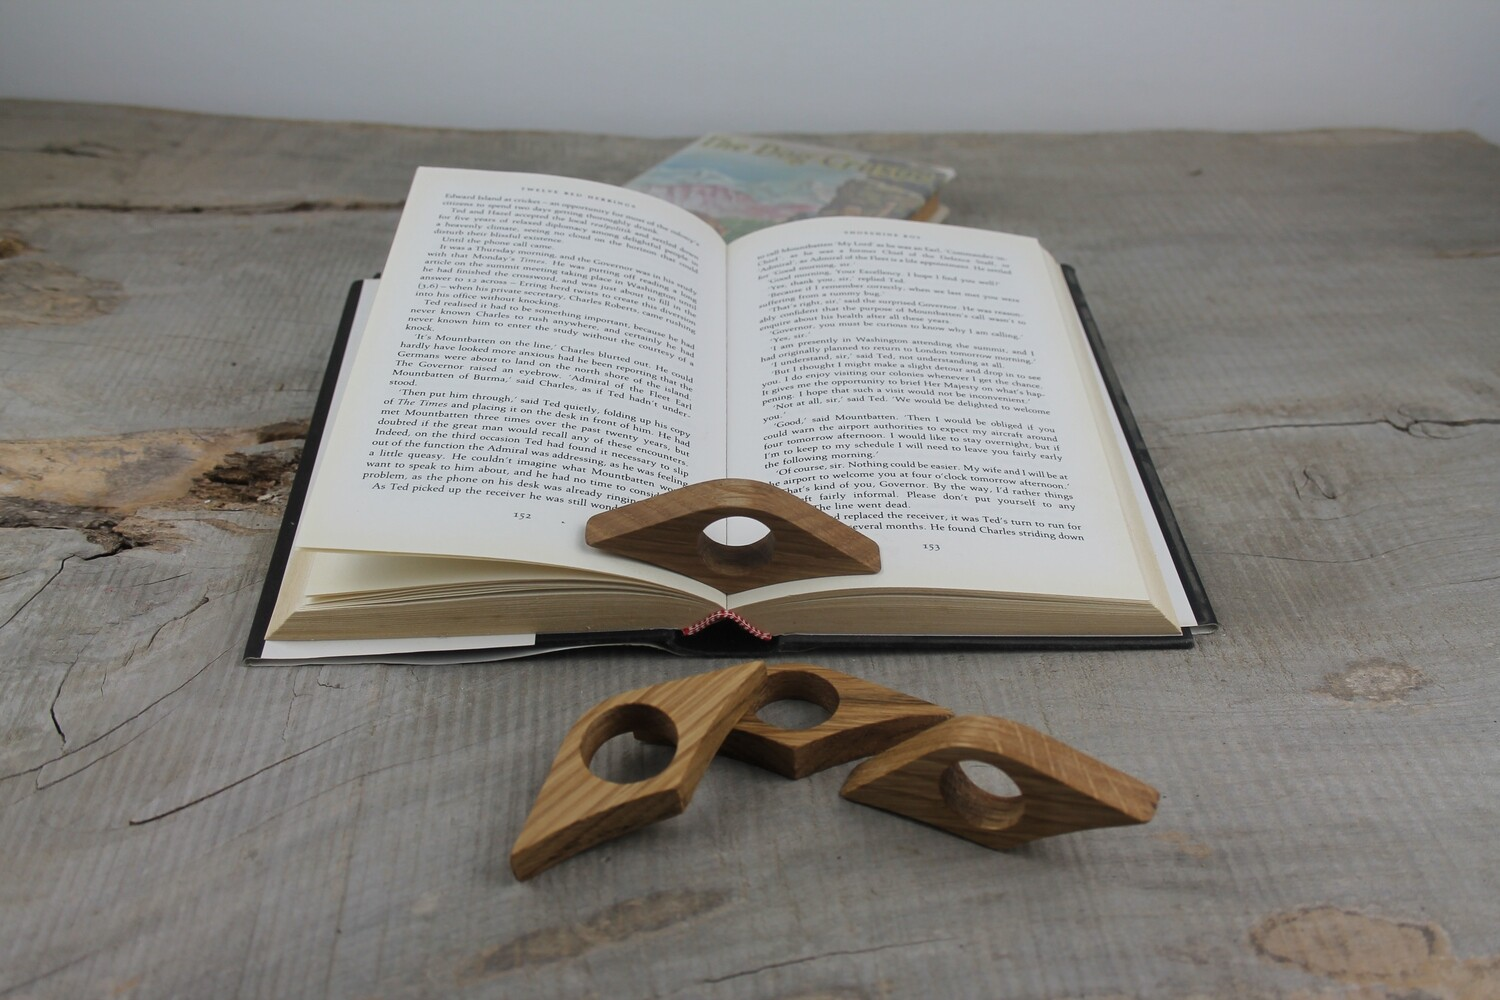 Oak Wood 22mm Thumb Ring Book Page Holder, Book Buddy